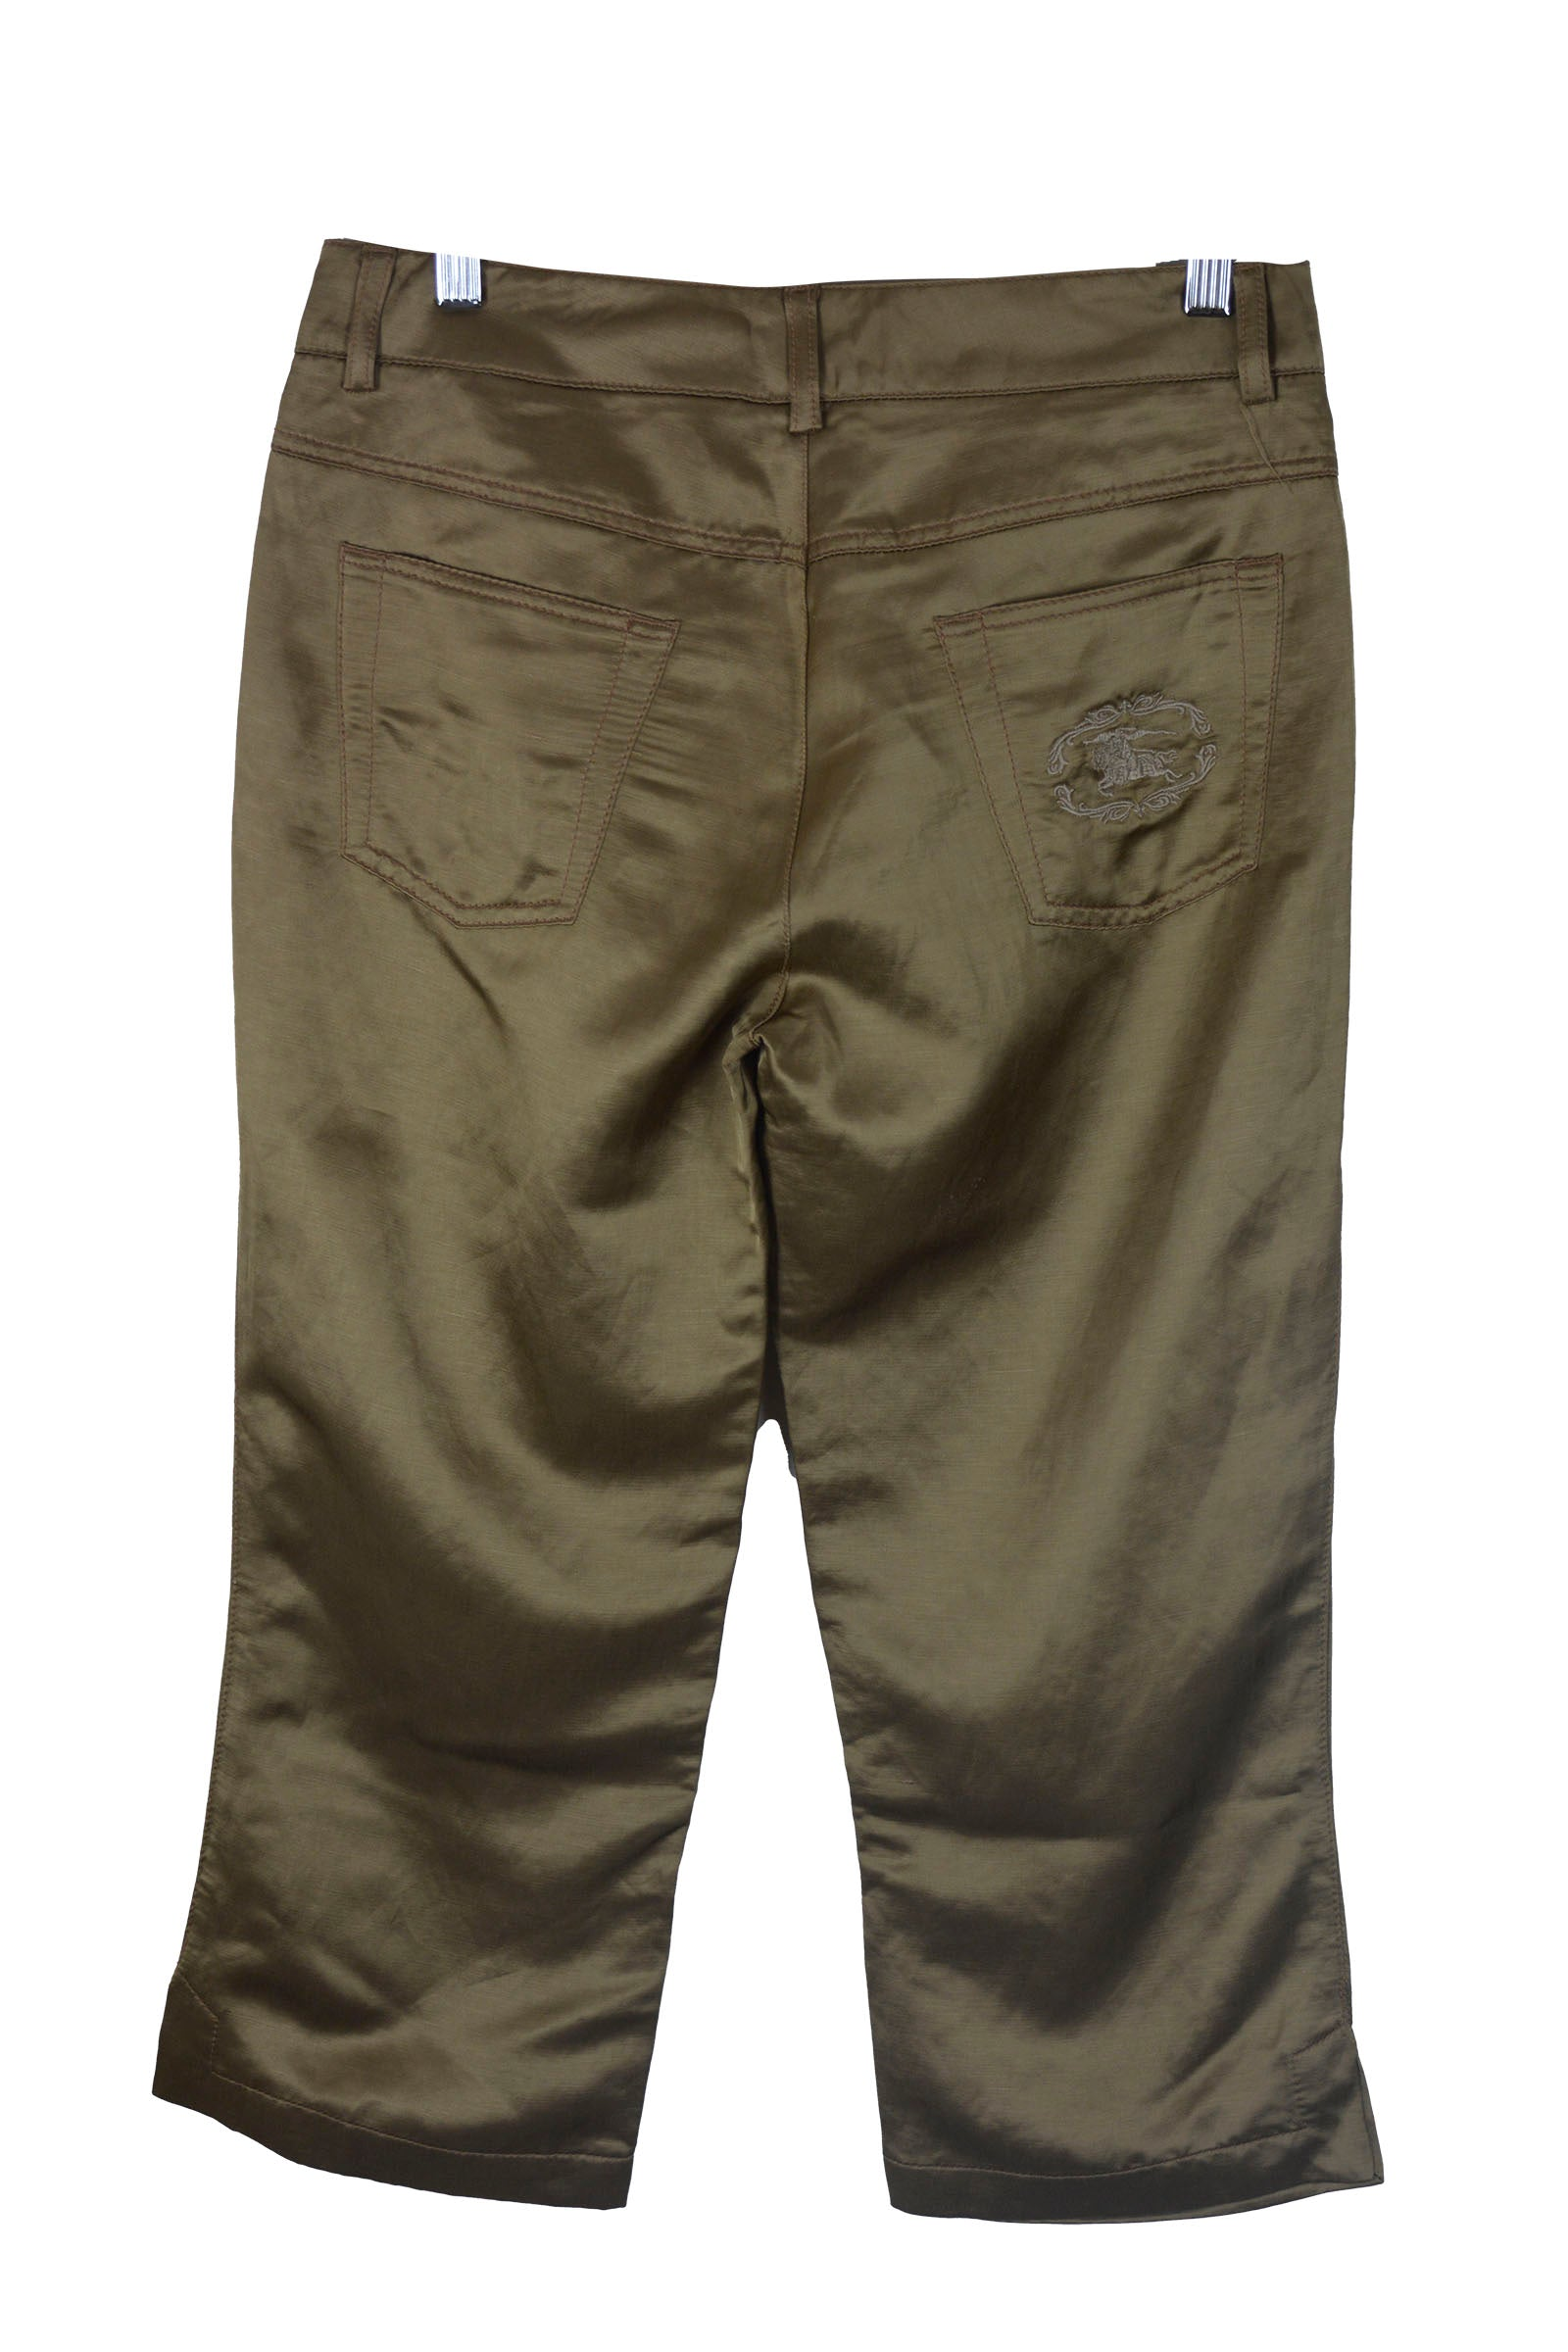 Burberry Bright Satin Look  Brown Ankle Trousers Size 40 (EU)